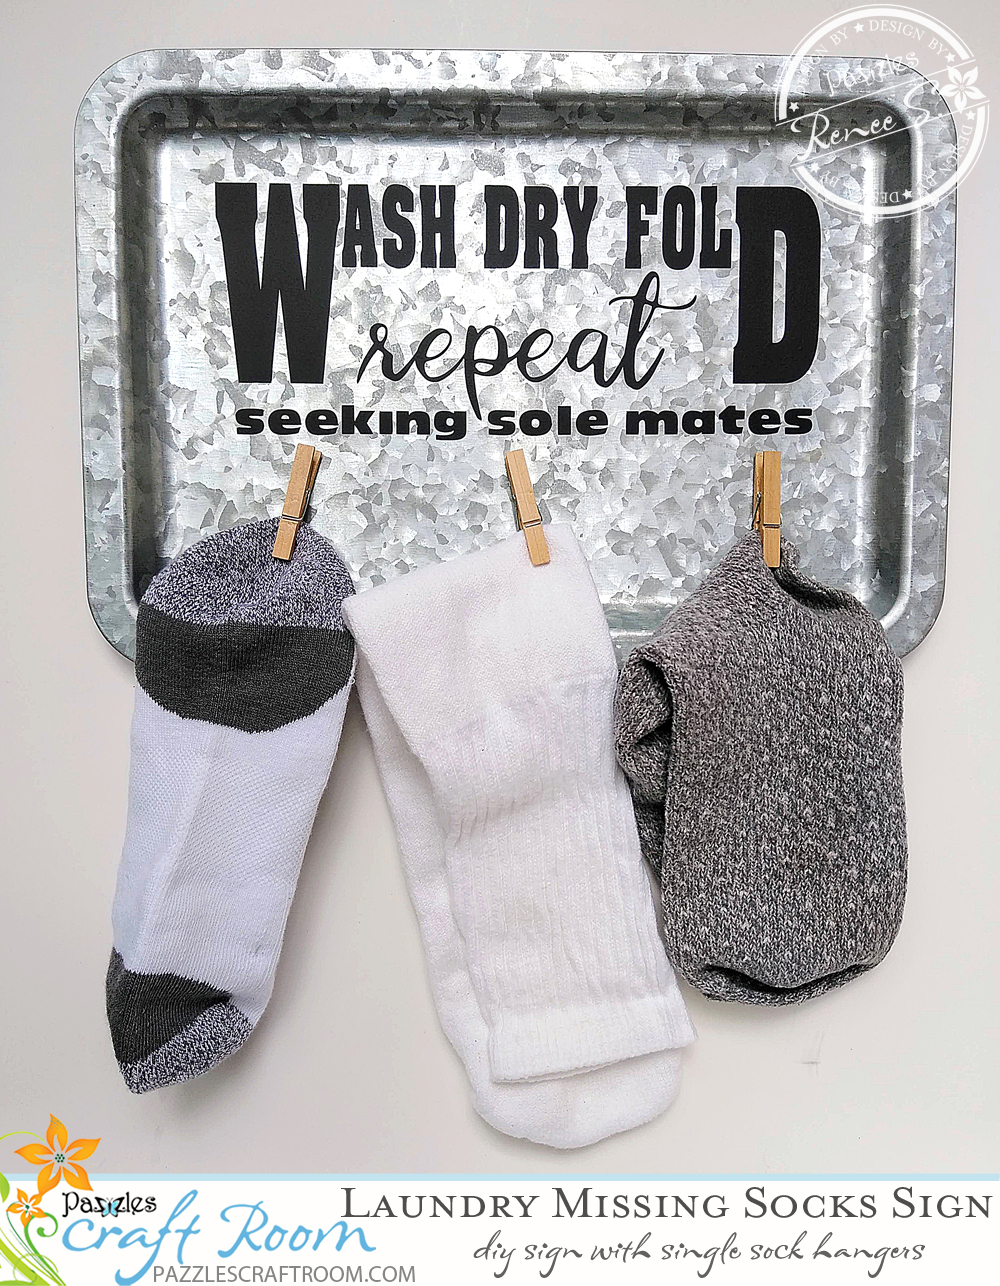 Pazzles DIY Laundry Sign for Missing Socks by Renee Smart Instant SVG Download